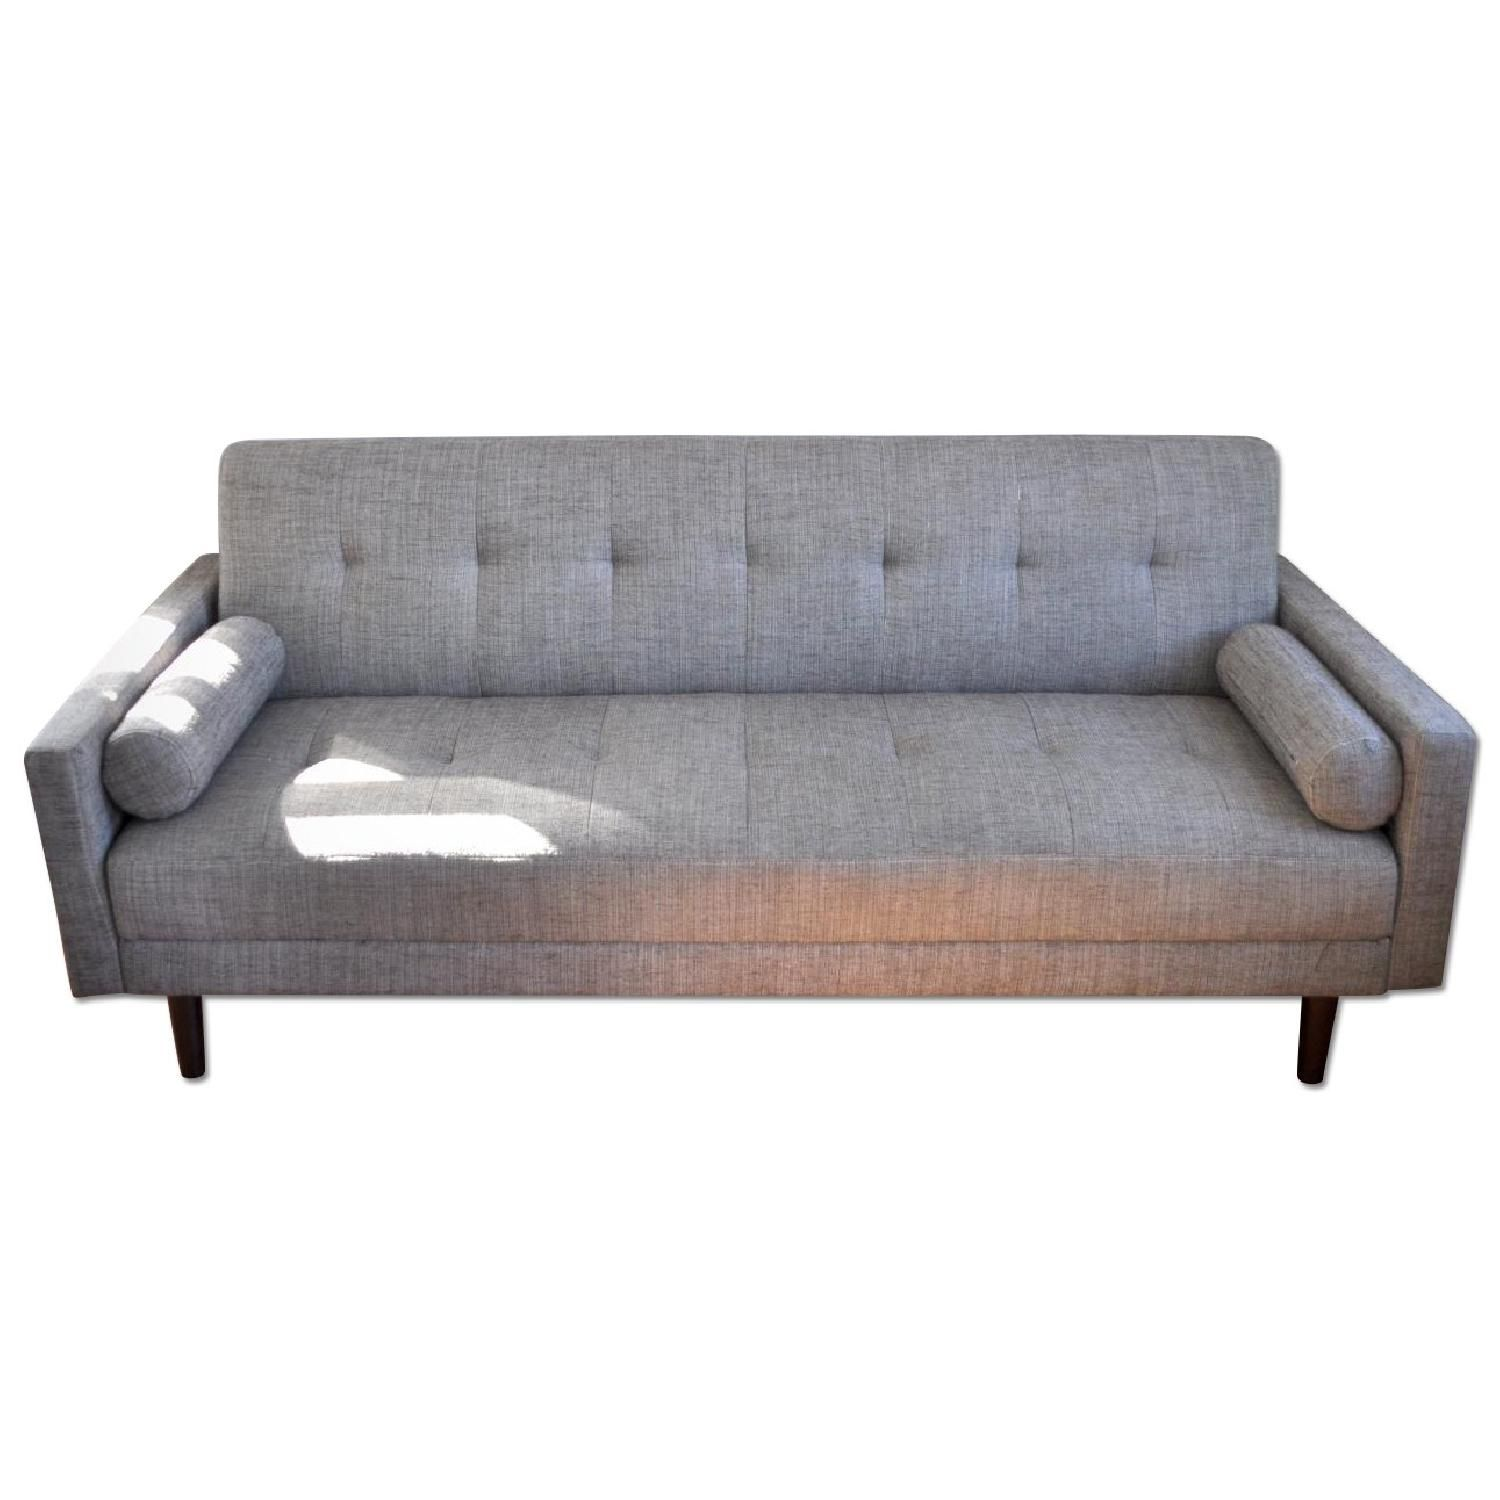 urban outfitters night day convertible sofa sofas pinterest rh pinterest com Castro Convertible Sleeper Sofa Convertible Sofas for Small Spaces